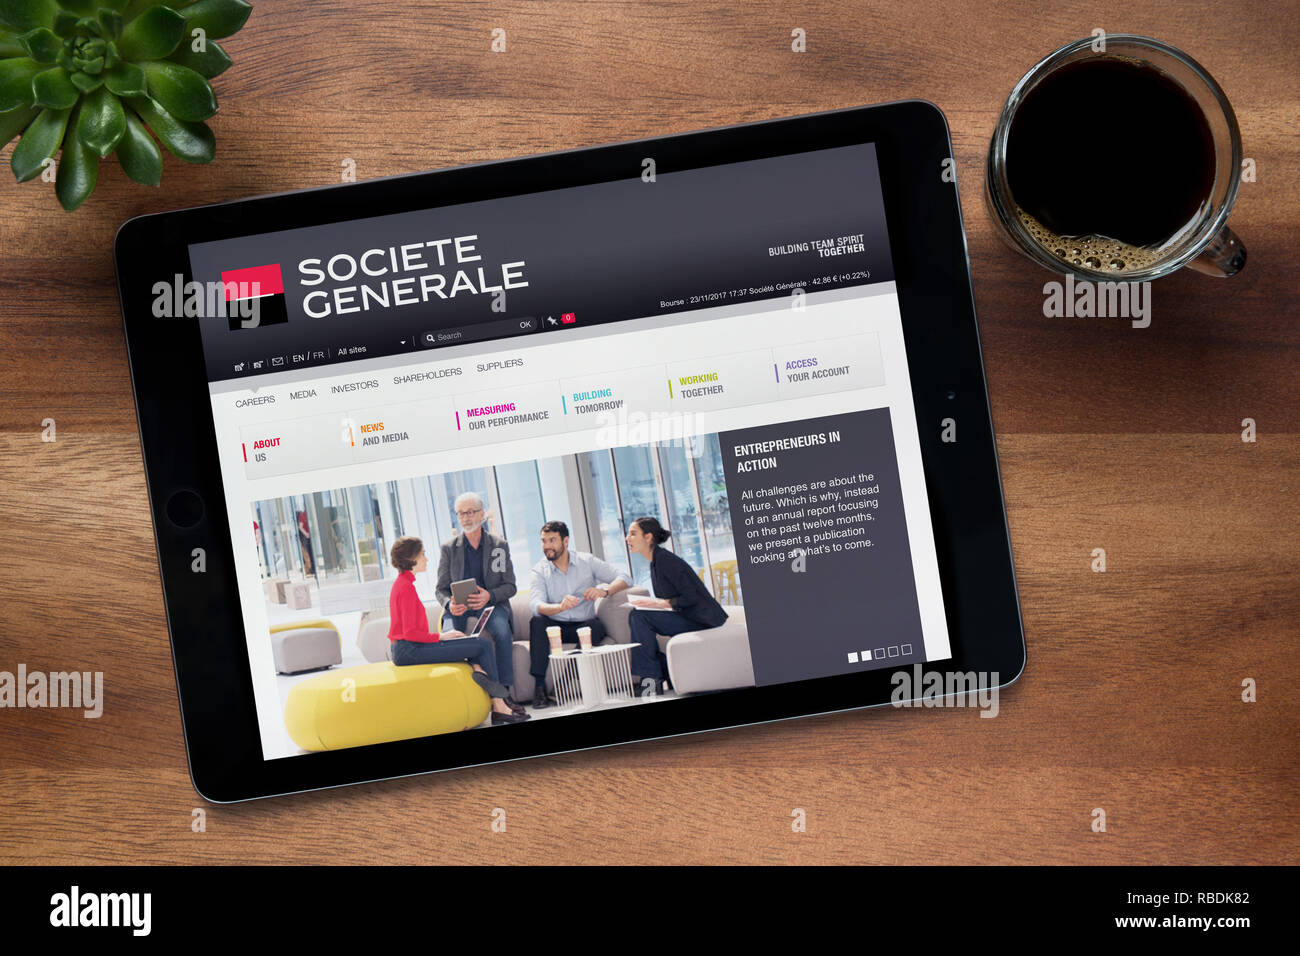 The website of Societe Generale is seen on an iPad tablet, on a wooden table along with an espresso coffee and a house plant (Editorial use only). - Stock Image